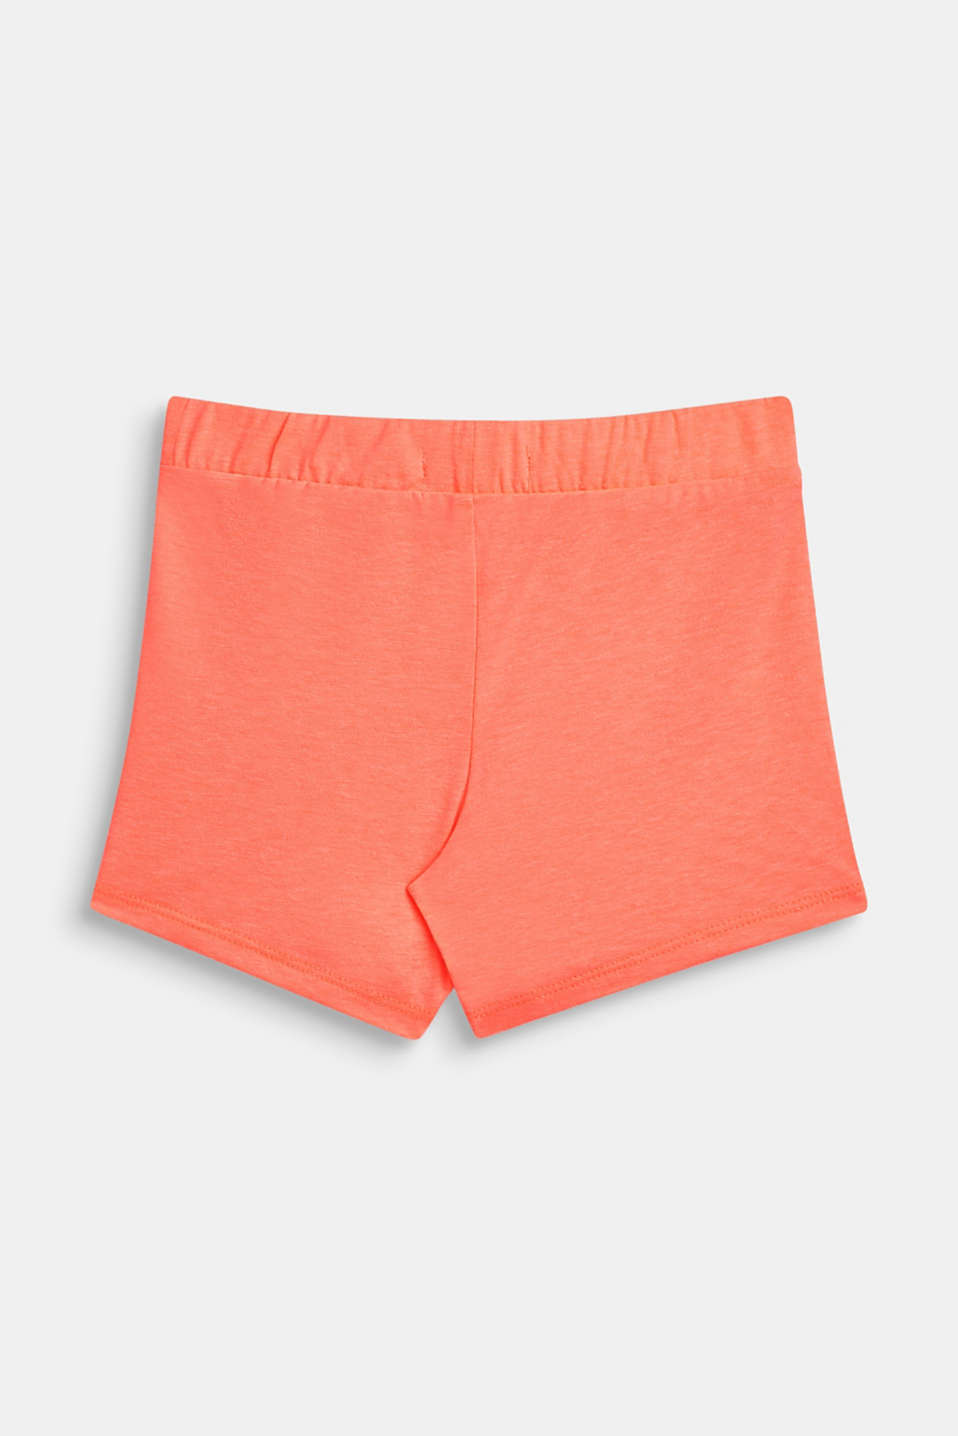 Shorts knitted, LCNEON CORAL, detail image number 1